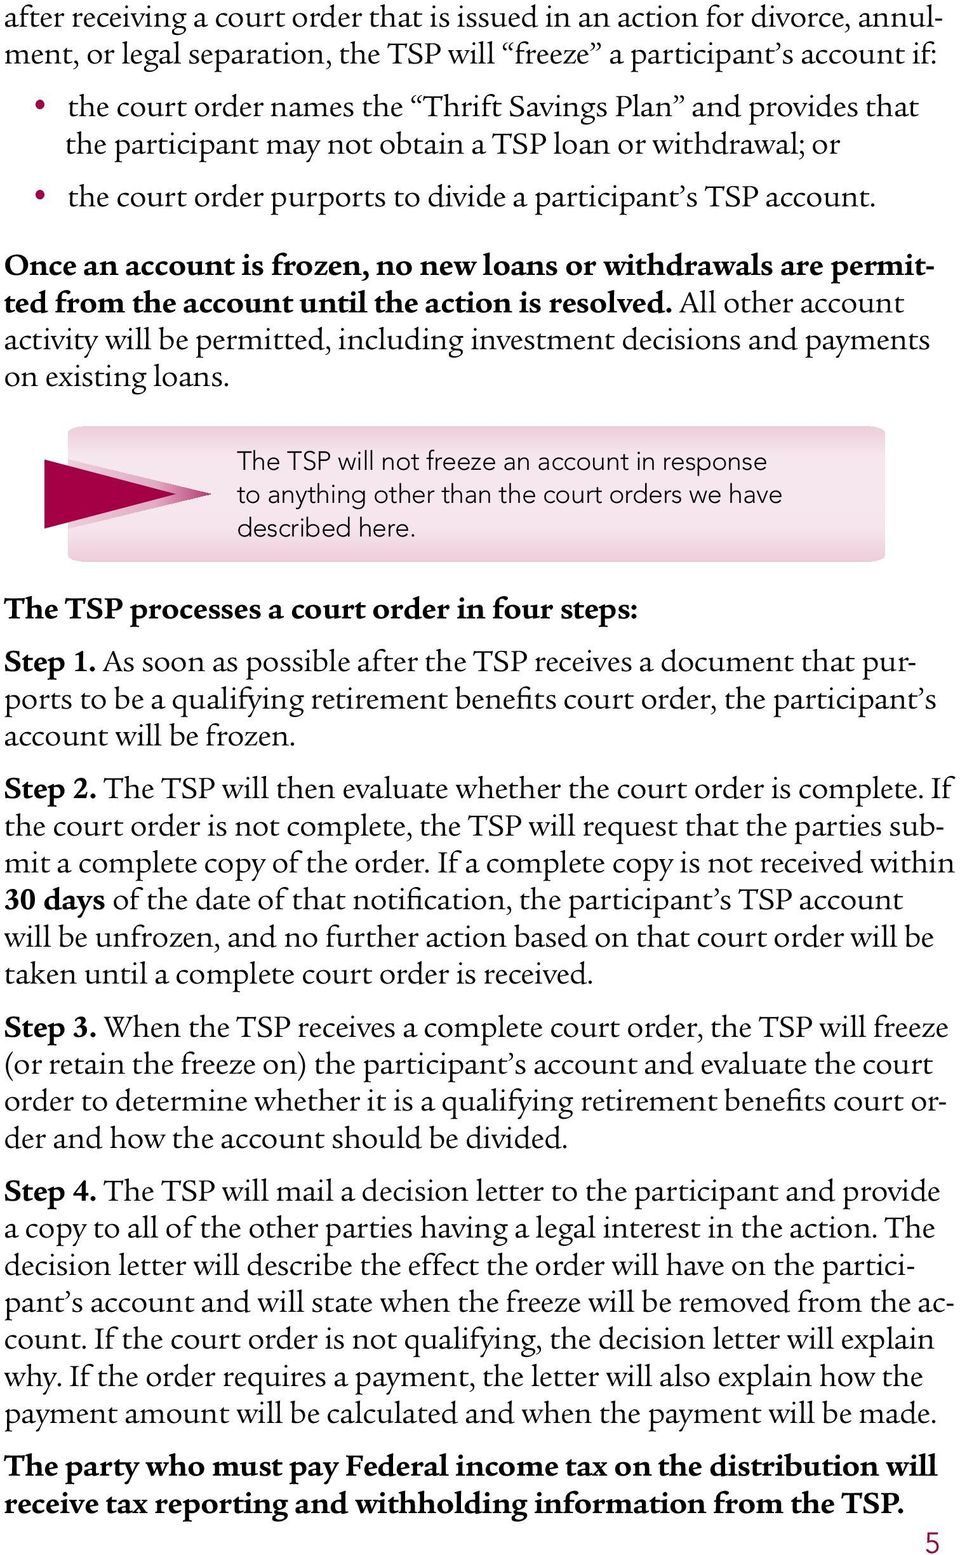 Once an account is frozen, no new loans or withdrawals are permitted from the account until the action is resolved.